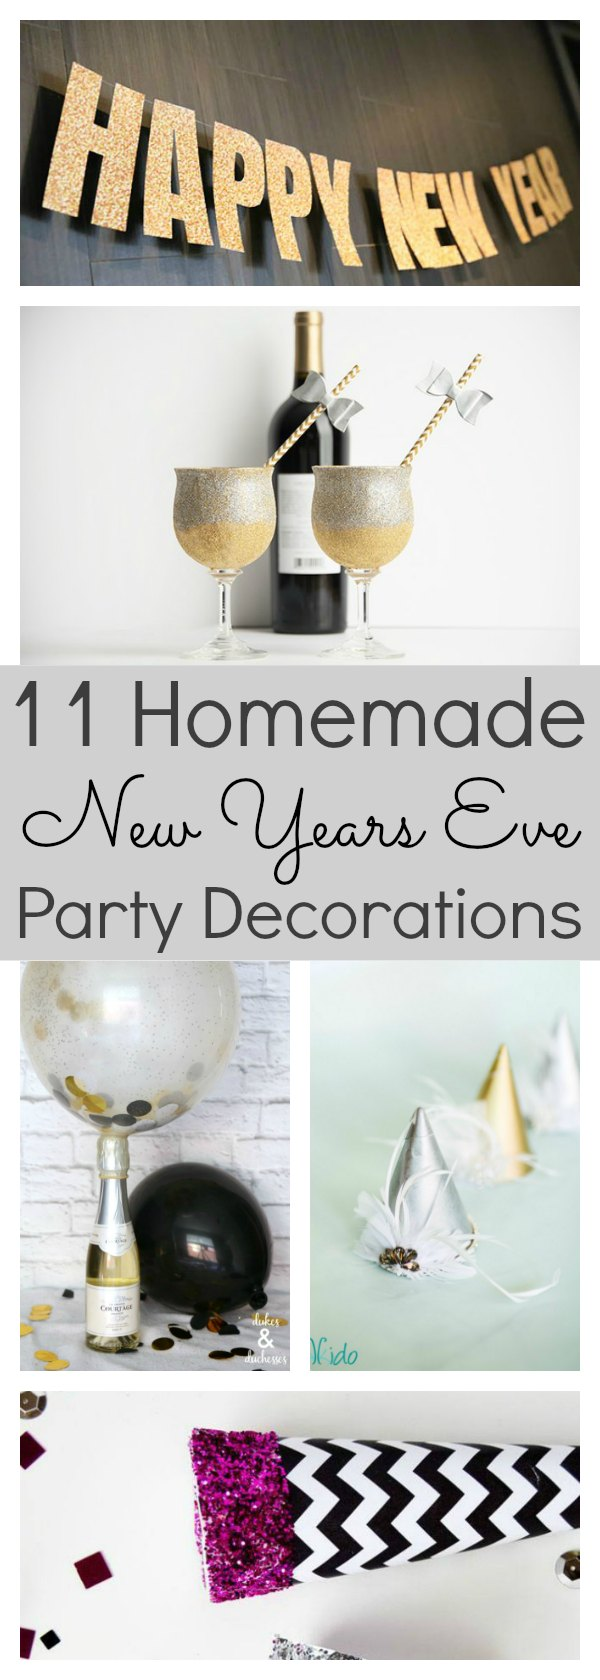 New years eve is all about the fun!  These homemade new years eve decorations will certainly help put that FUN into the evening. All of these ideas can be put together last minute, so if you have nothing planned right now, you certainly don't need to stress. With easy tutorials and simple materials, you can whip up every single one of these ideas in no time at all. #NewYearsEve #Decorations #DIY #Homemade